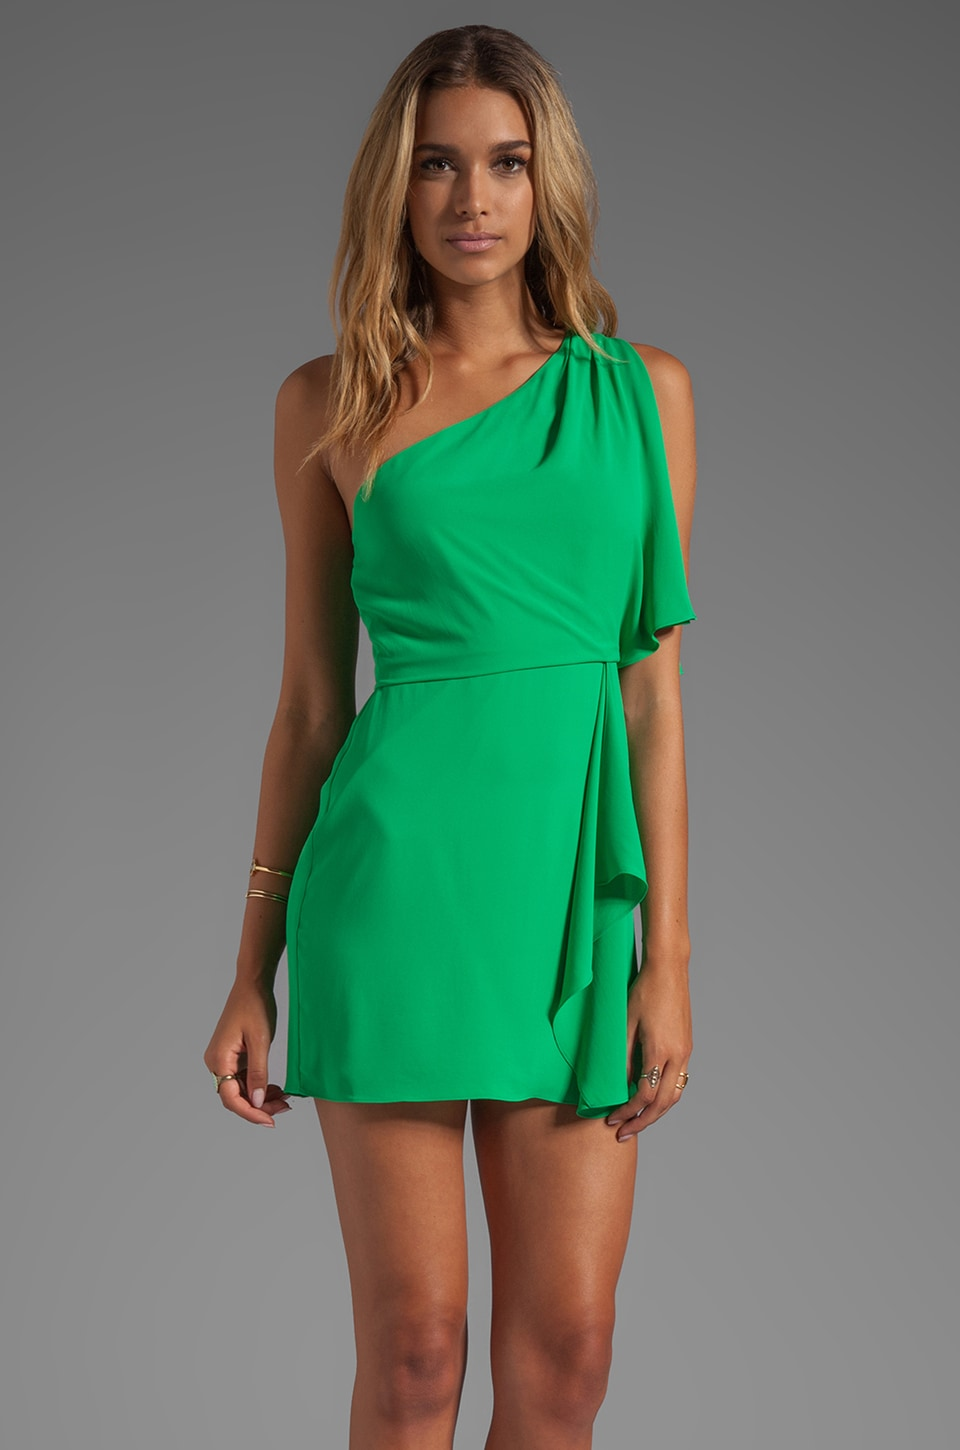 BCBGMAXAZRIA Mina One Shoulder Dress in Light Evergreen